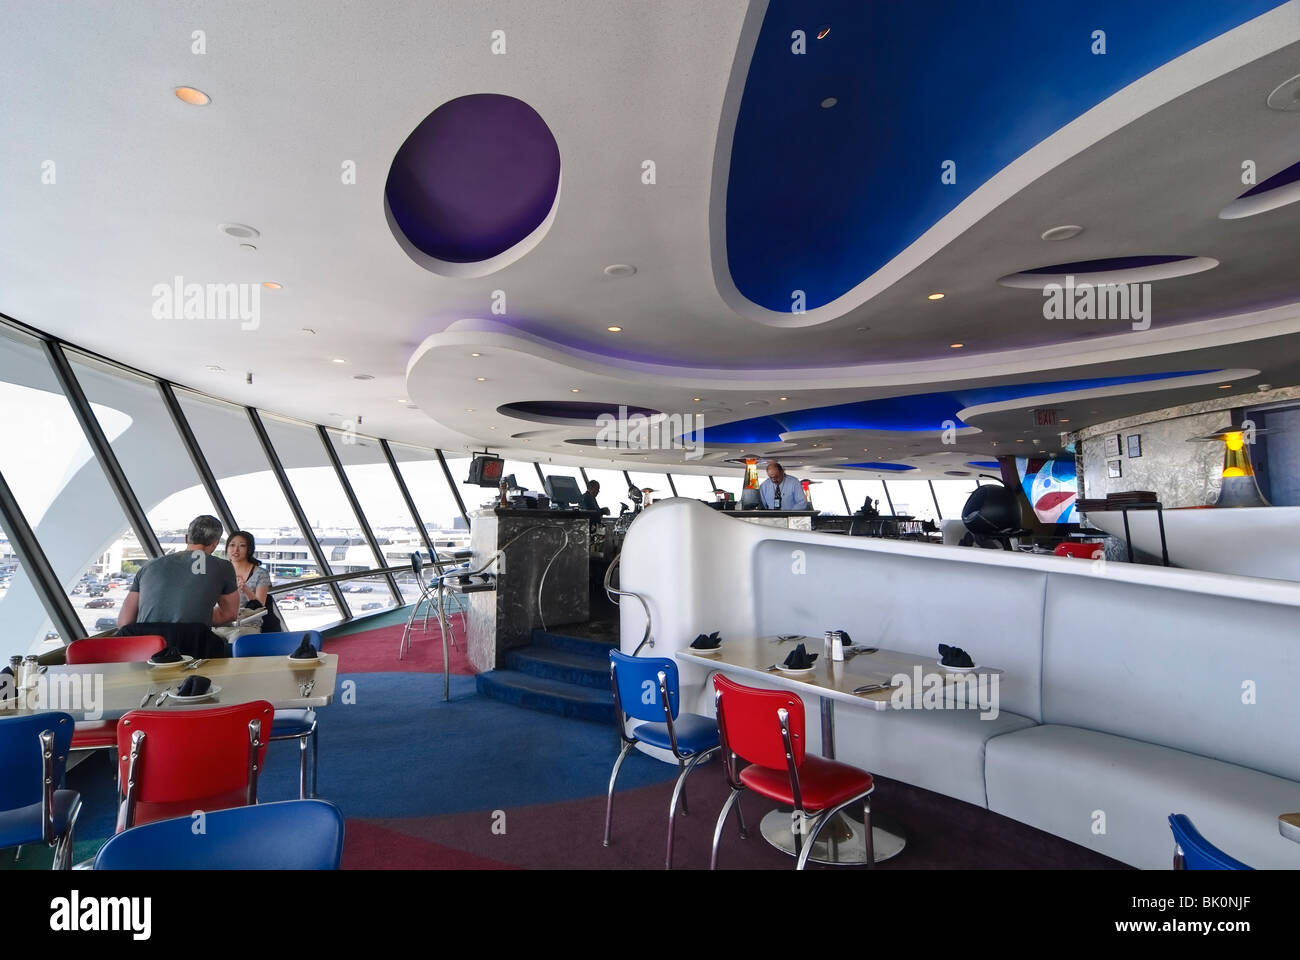 The Encounter Restaurant at LAX, Los Angeles International Airport. - Stock Image